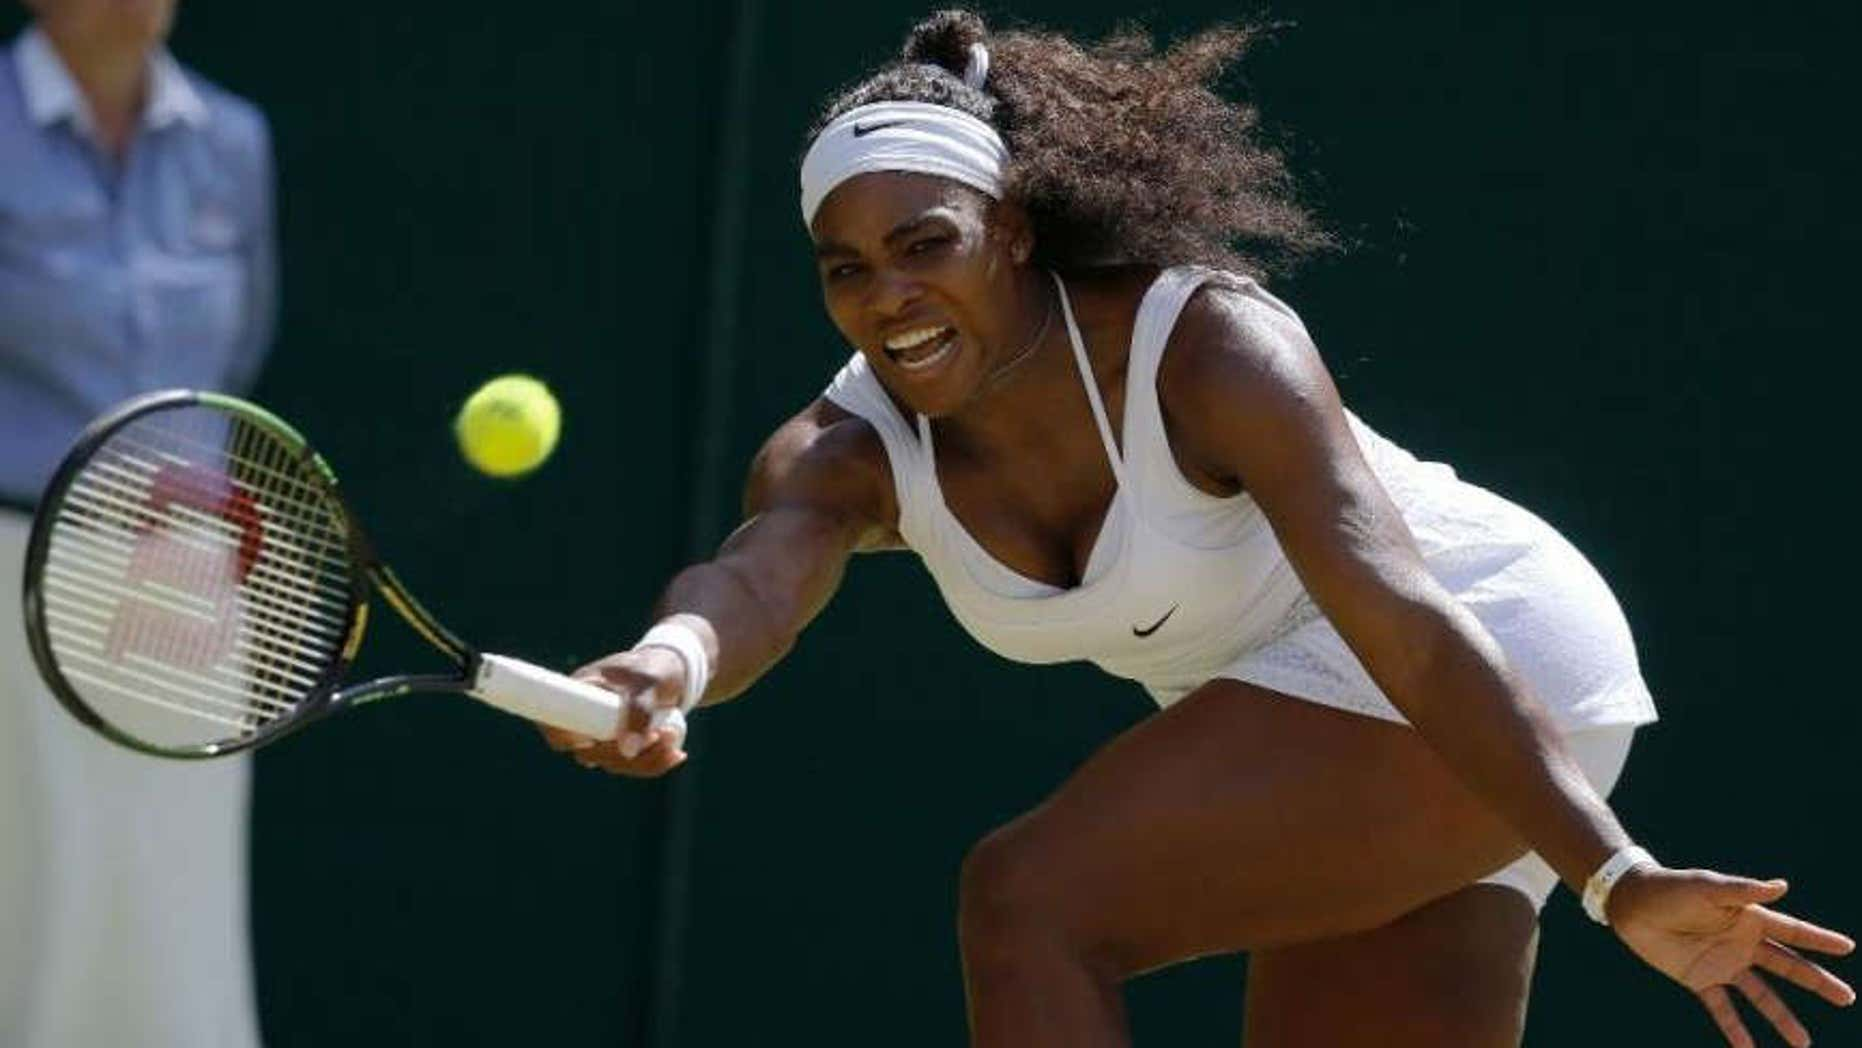 July 11, 2015: Serena Williams of the United States returns a shot to Garbine Muguruza of Spain, during the women's singles final at the All England Lawn Tennis Championships in Wimbledon, London.